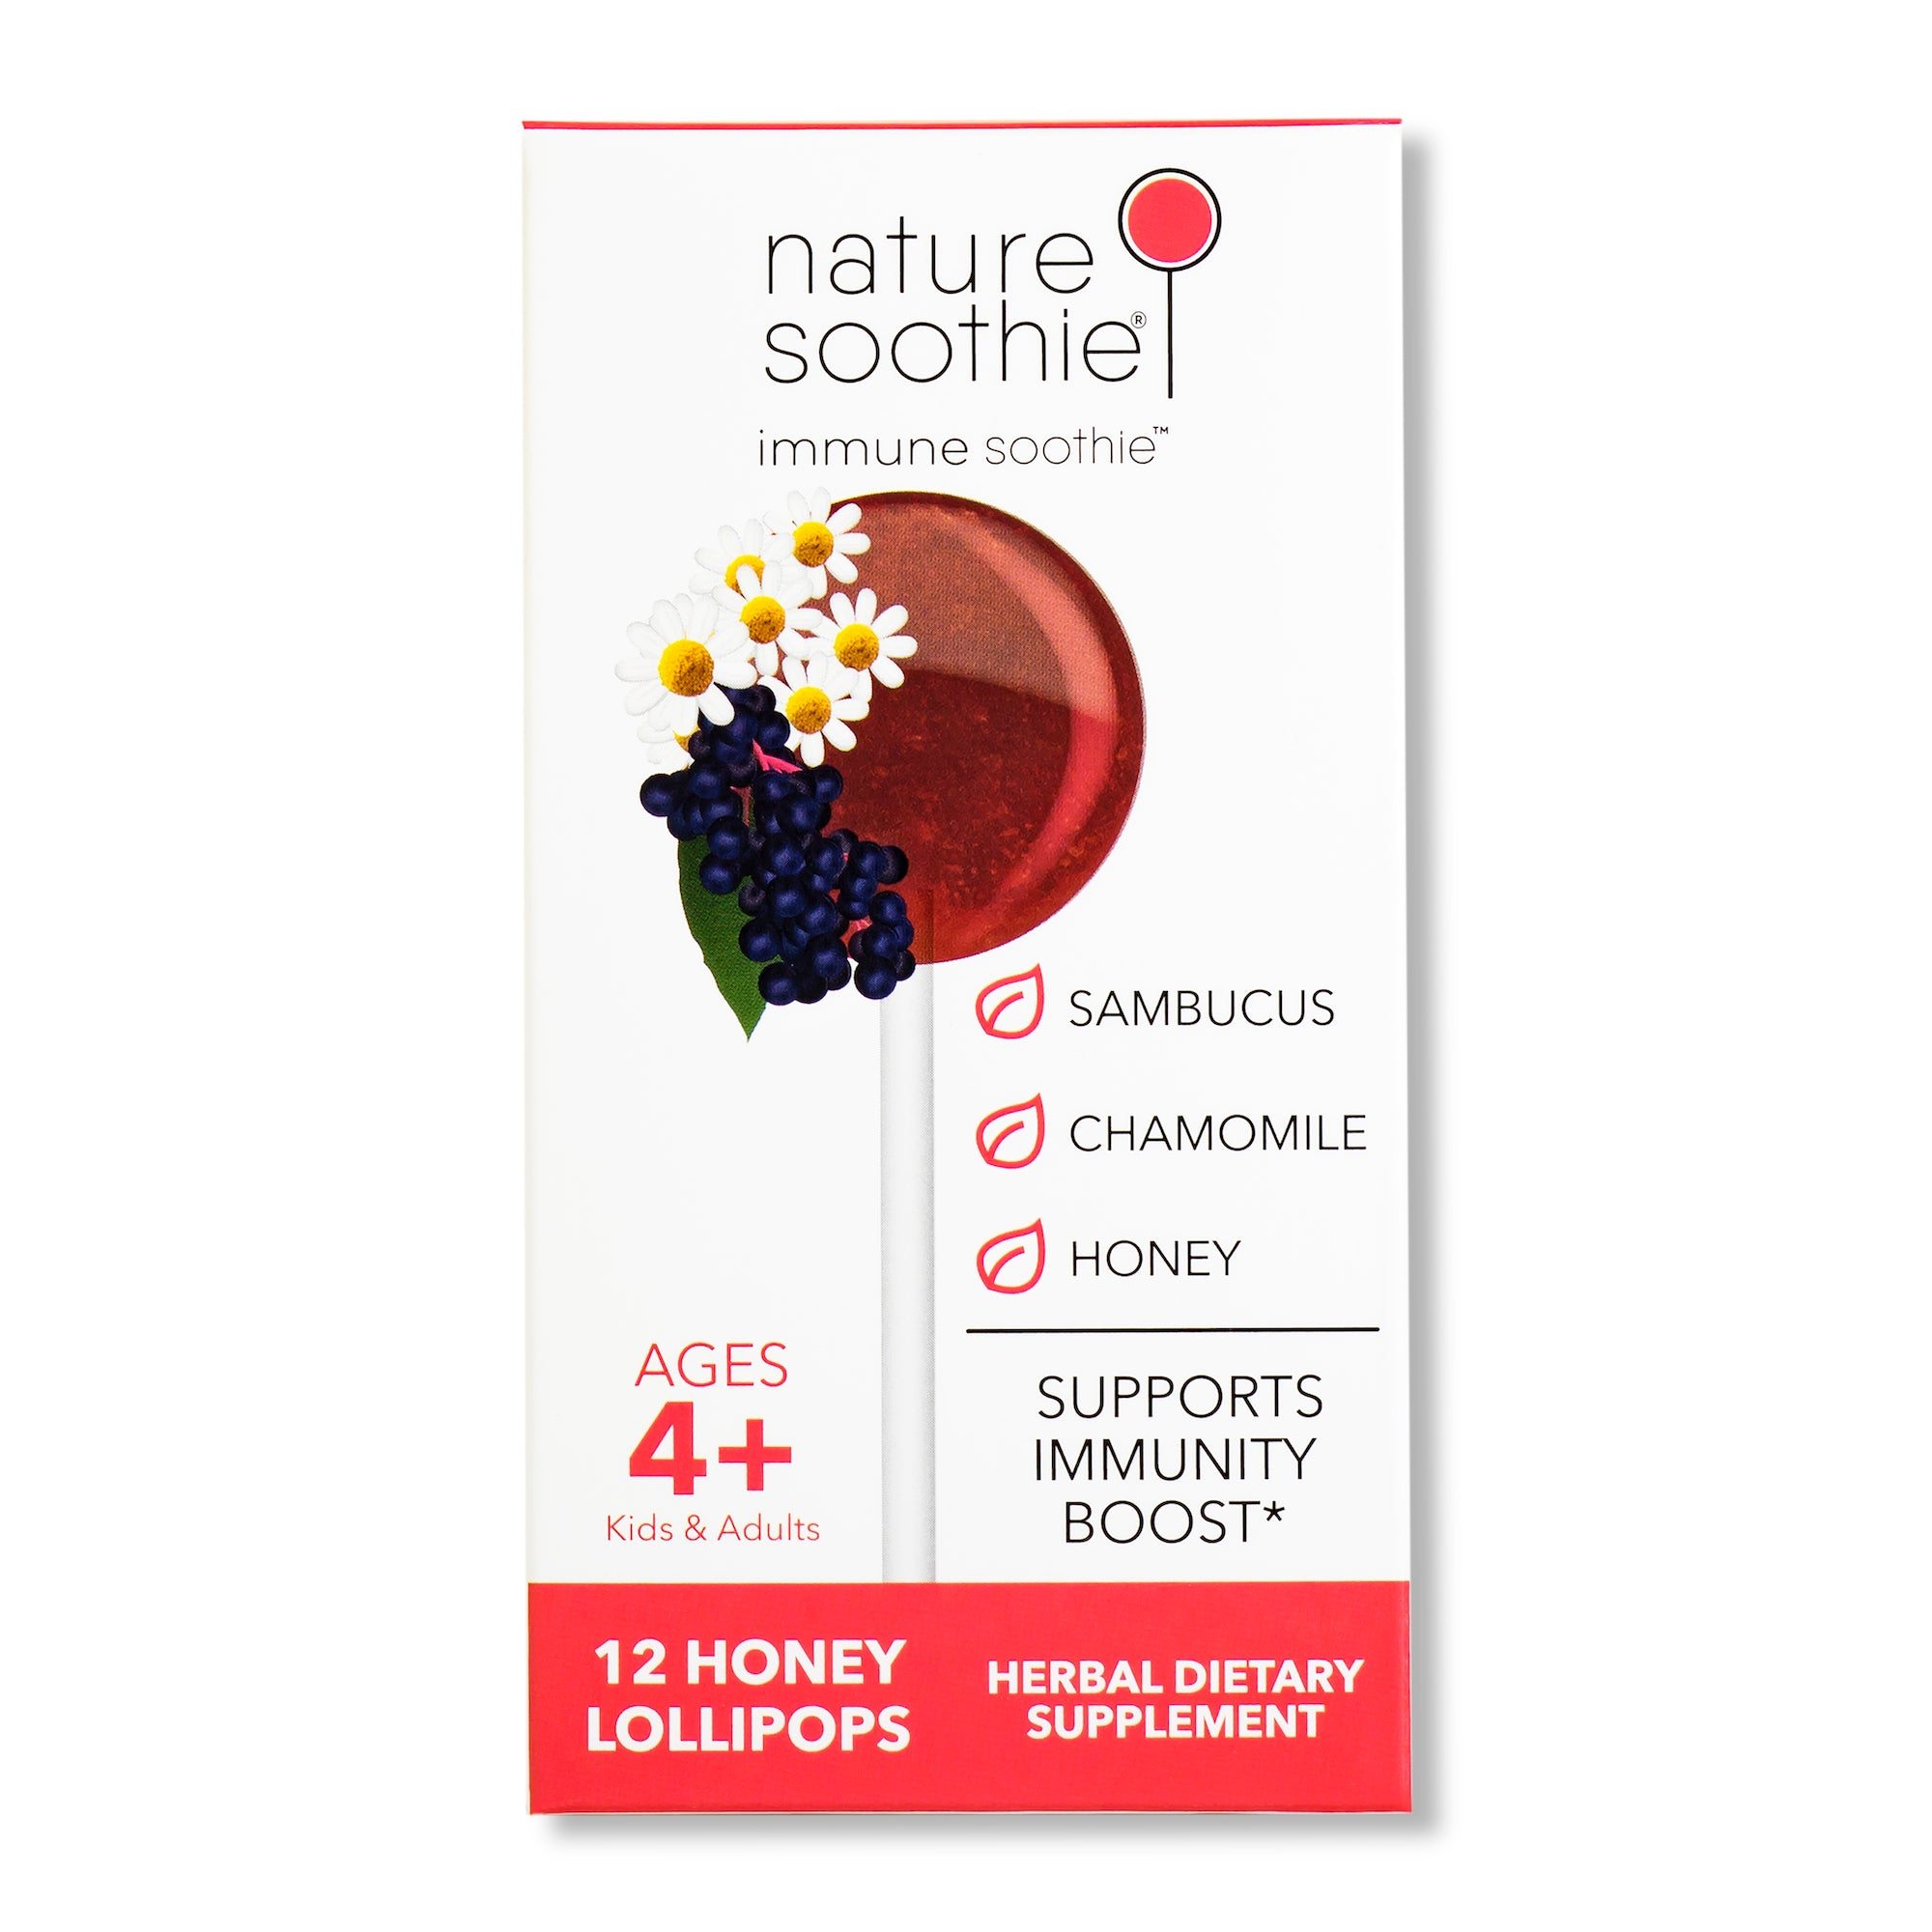 Immune Soothie Lollipop (12-pack)